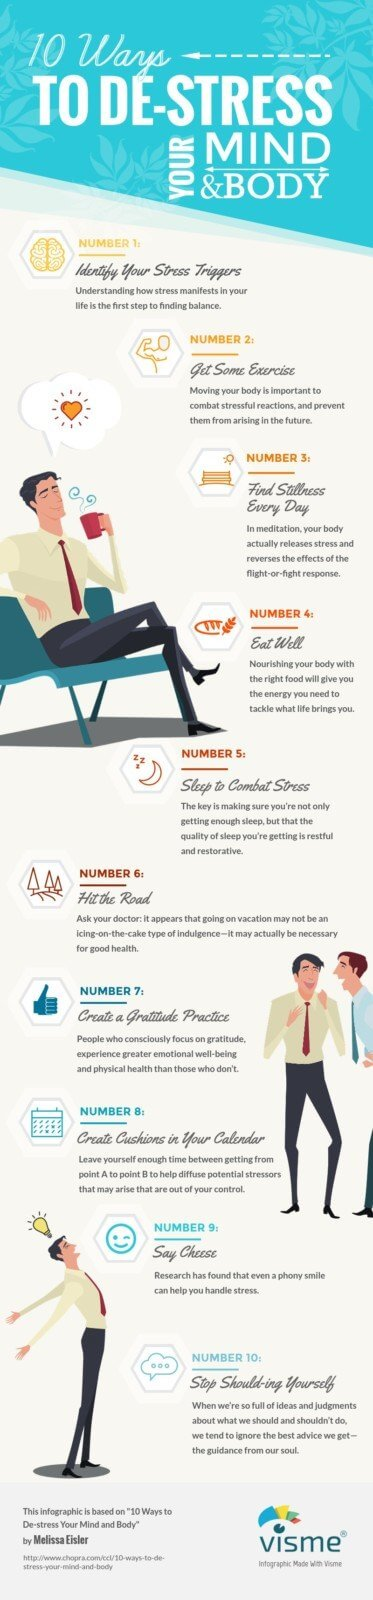 10 Ways to De-stress Your Mind and Body